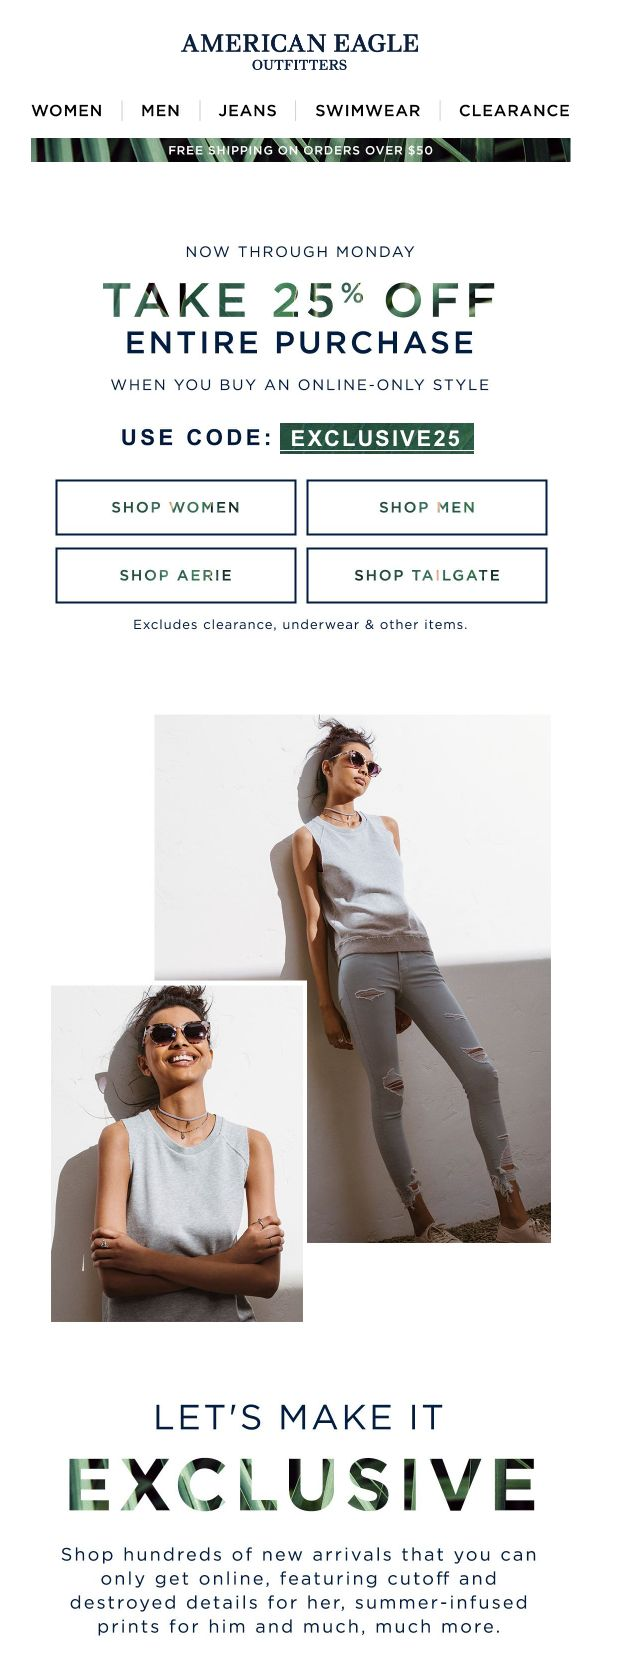 """4.9.17 american eagle """"Shop online-exclusives & take 25% off!"""""""